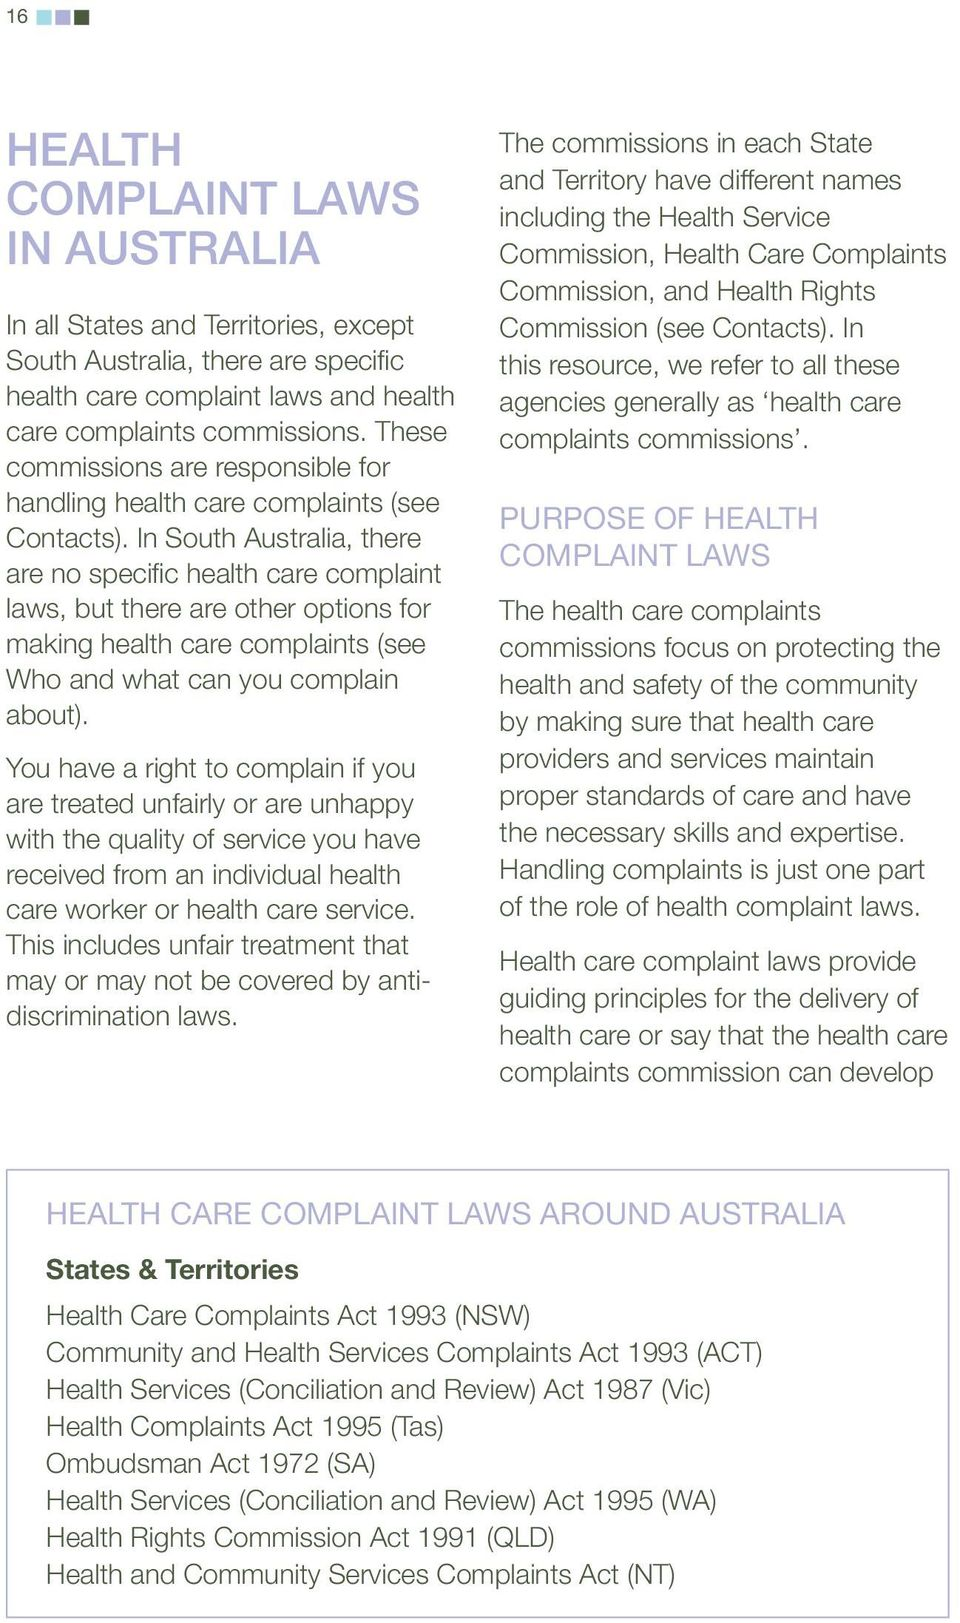 In South Australia, there are no specific health care complaint laws, but there are other options for making health care complaints (see Who and what can you complain about).